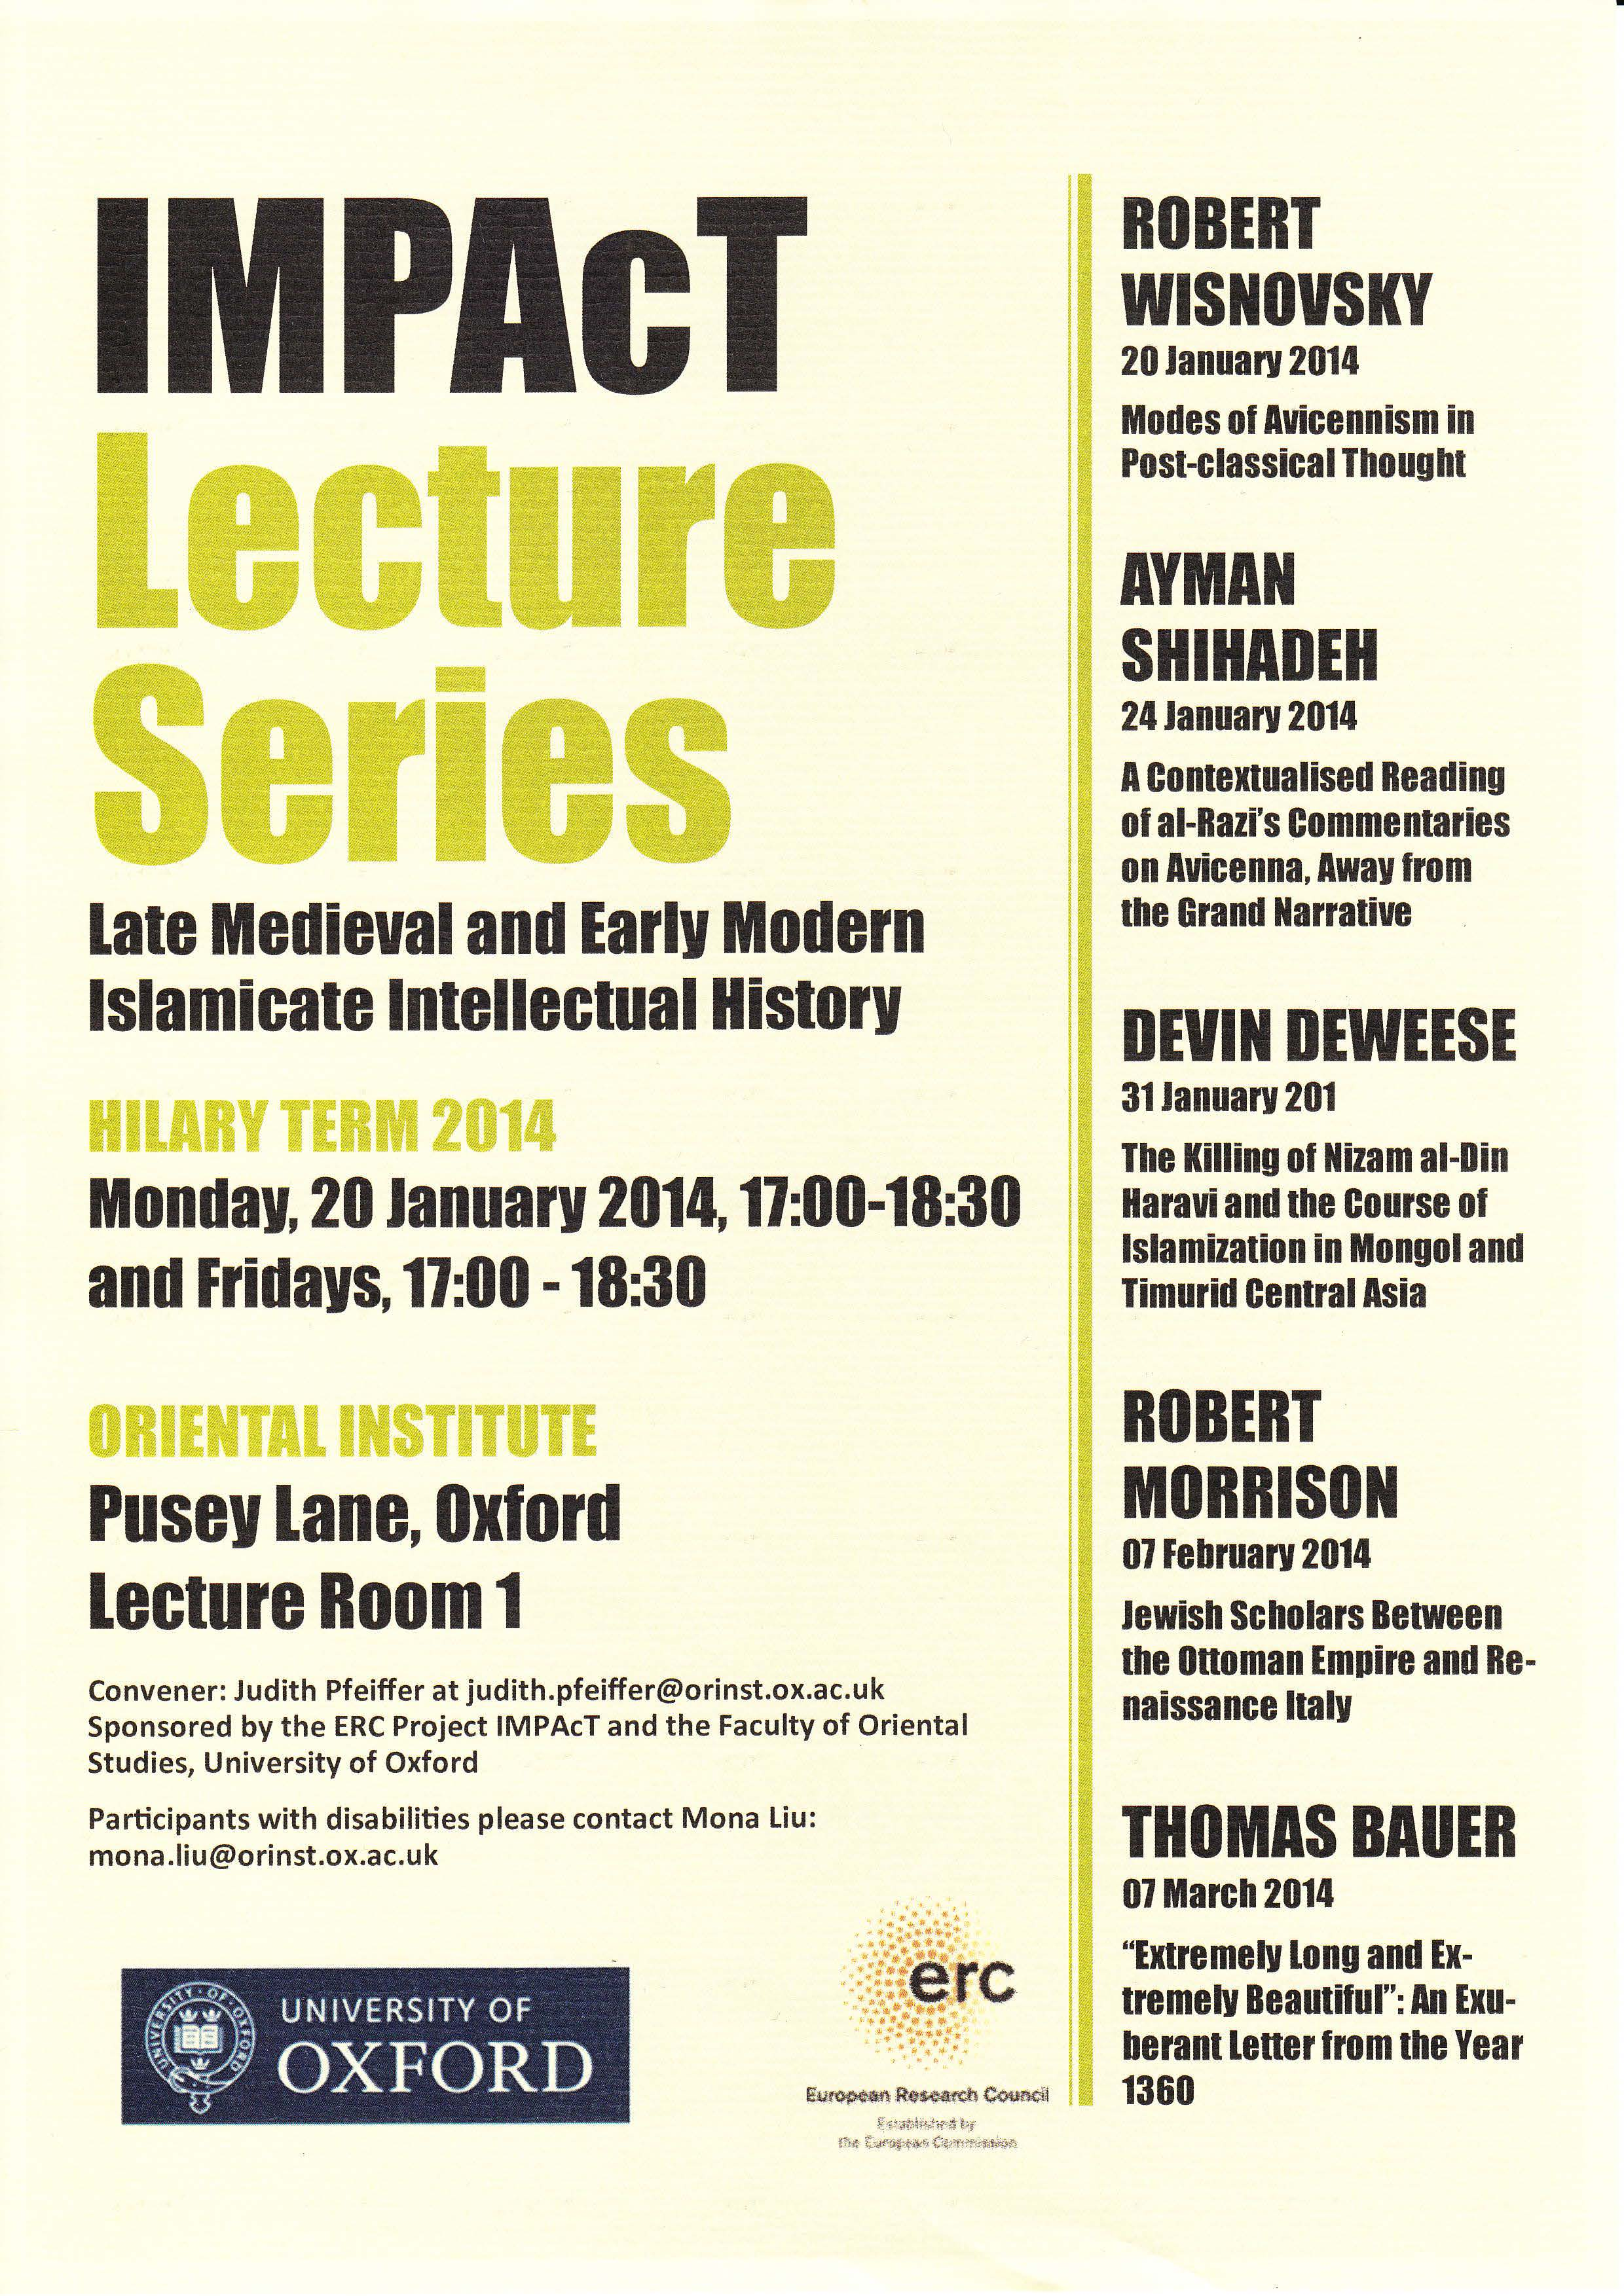 IMPAcT Lecture Series on Late Medieval and Early Modern Islamicate Intellectual History_HT 2014